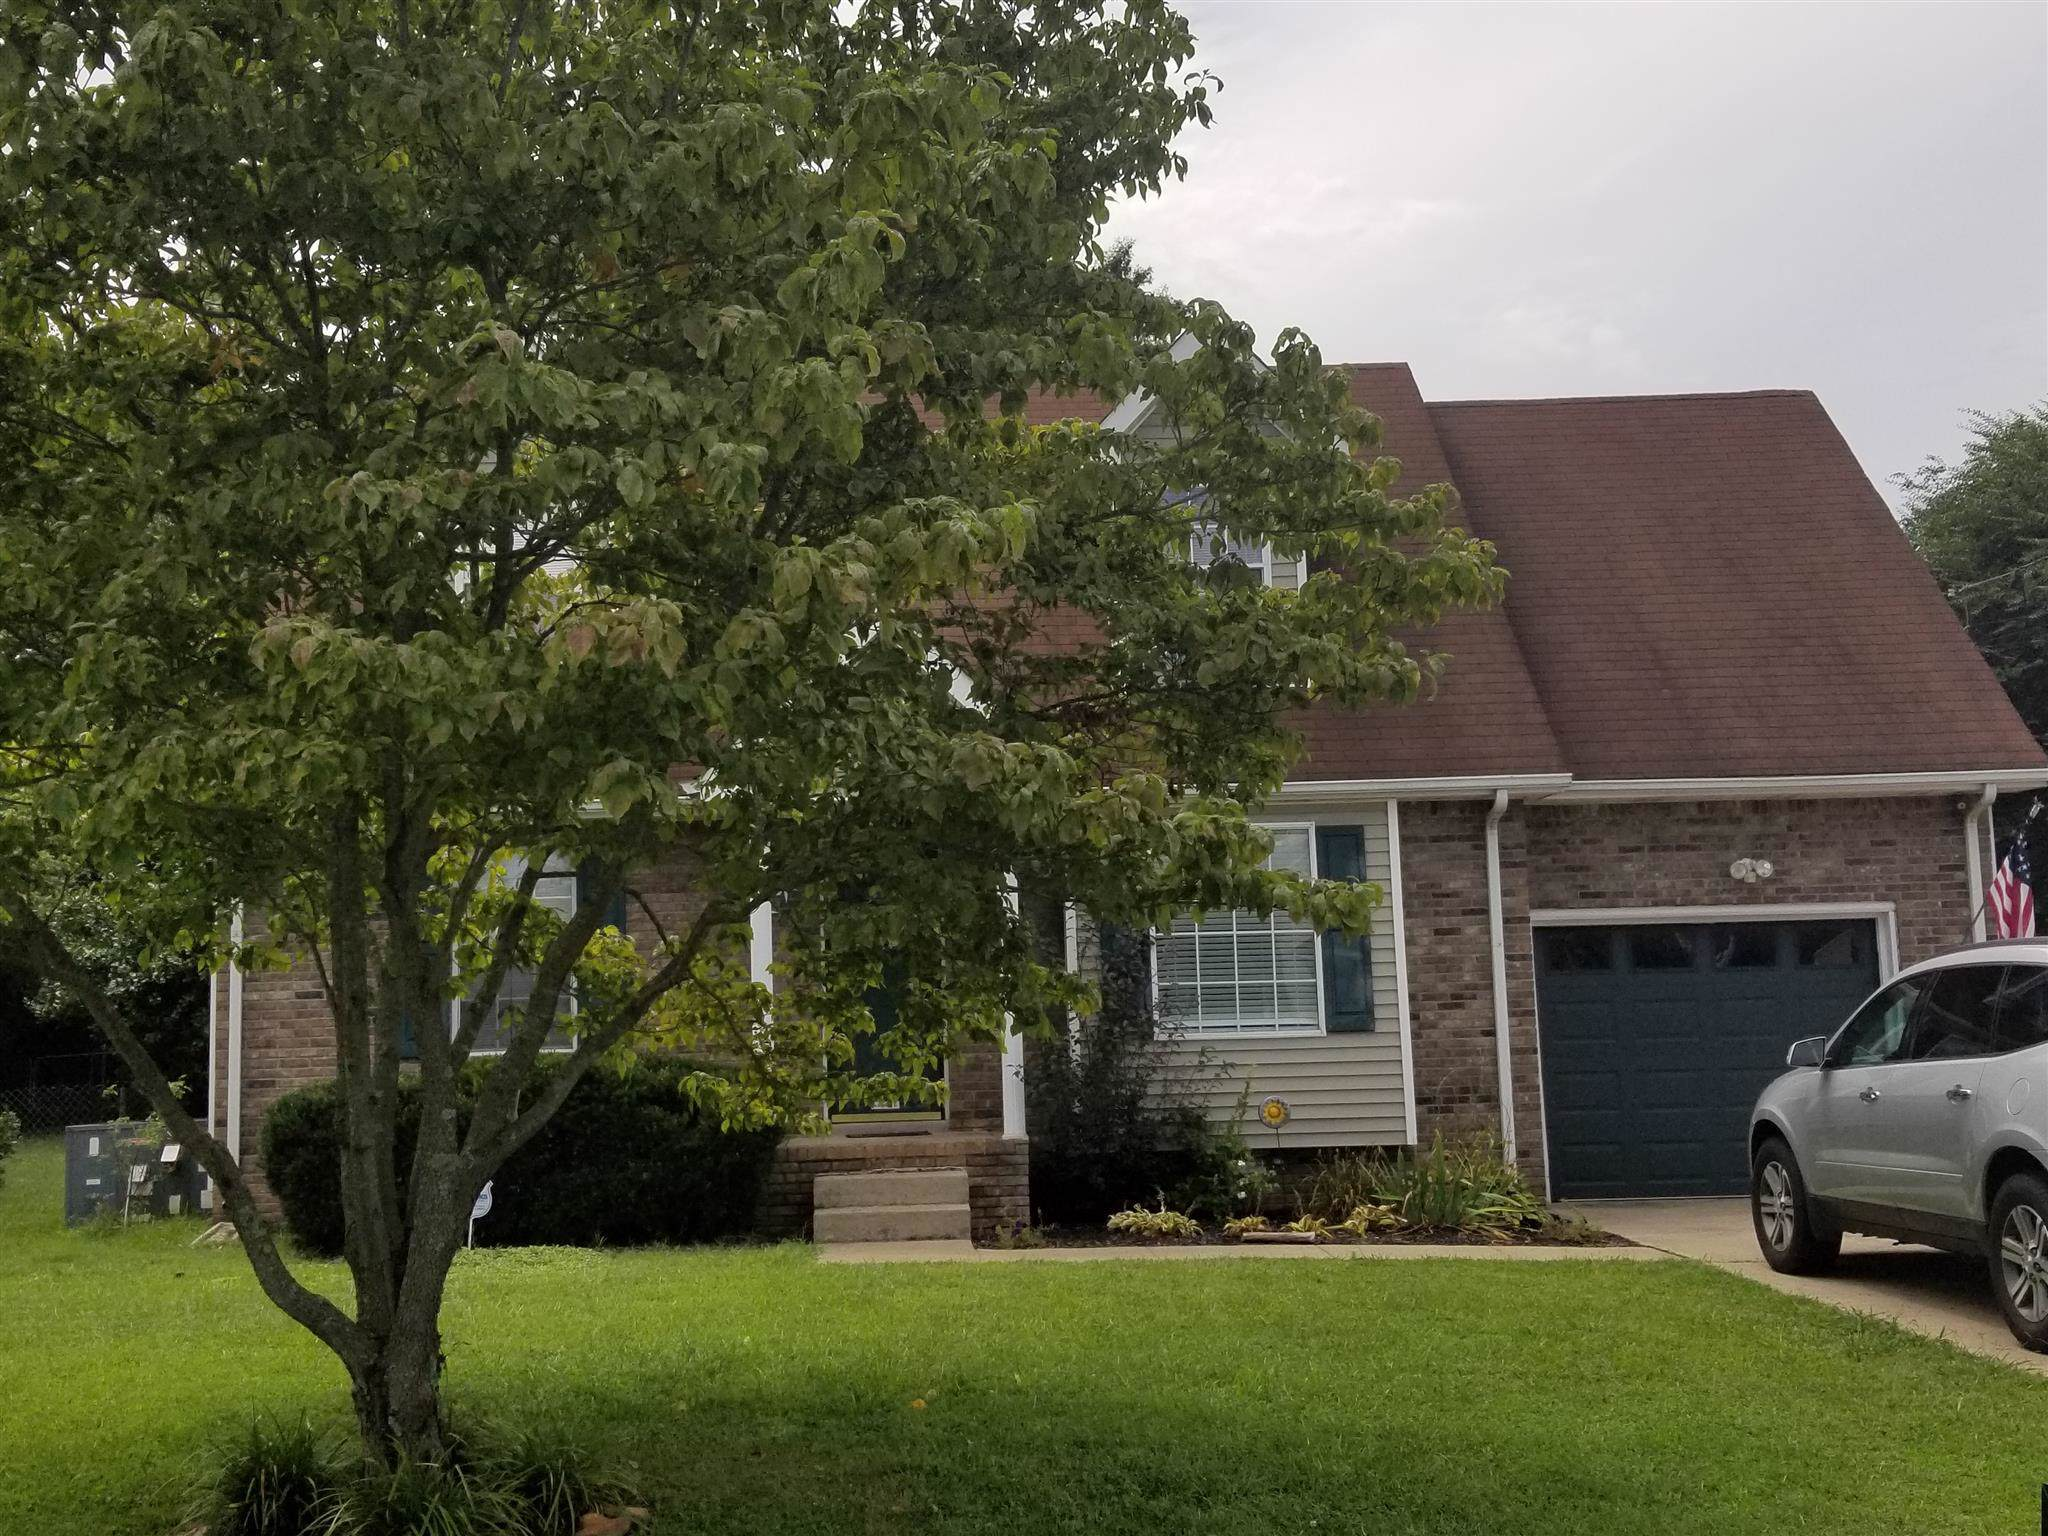 204 Windroe Ct, Clarksville, TN 37042 (MLS #RTC2072458) :: Nashville on the Move